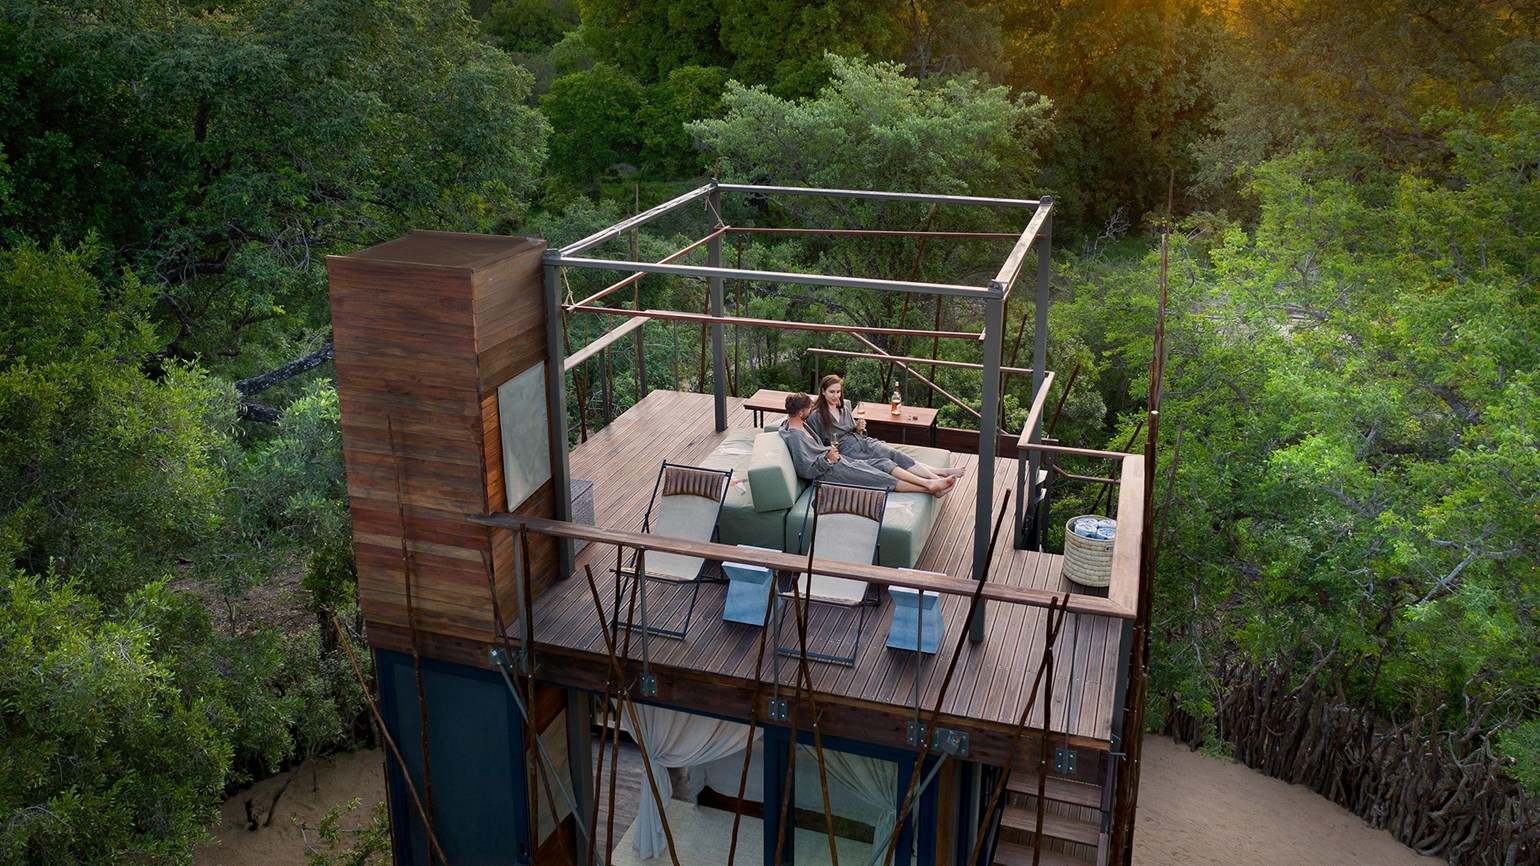 AndBeyond opens treehouse near Kruger Nat'l Park